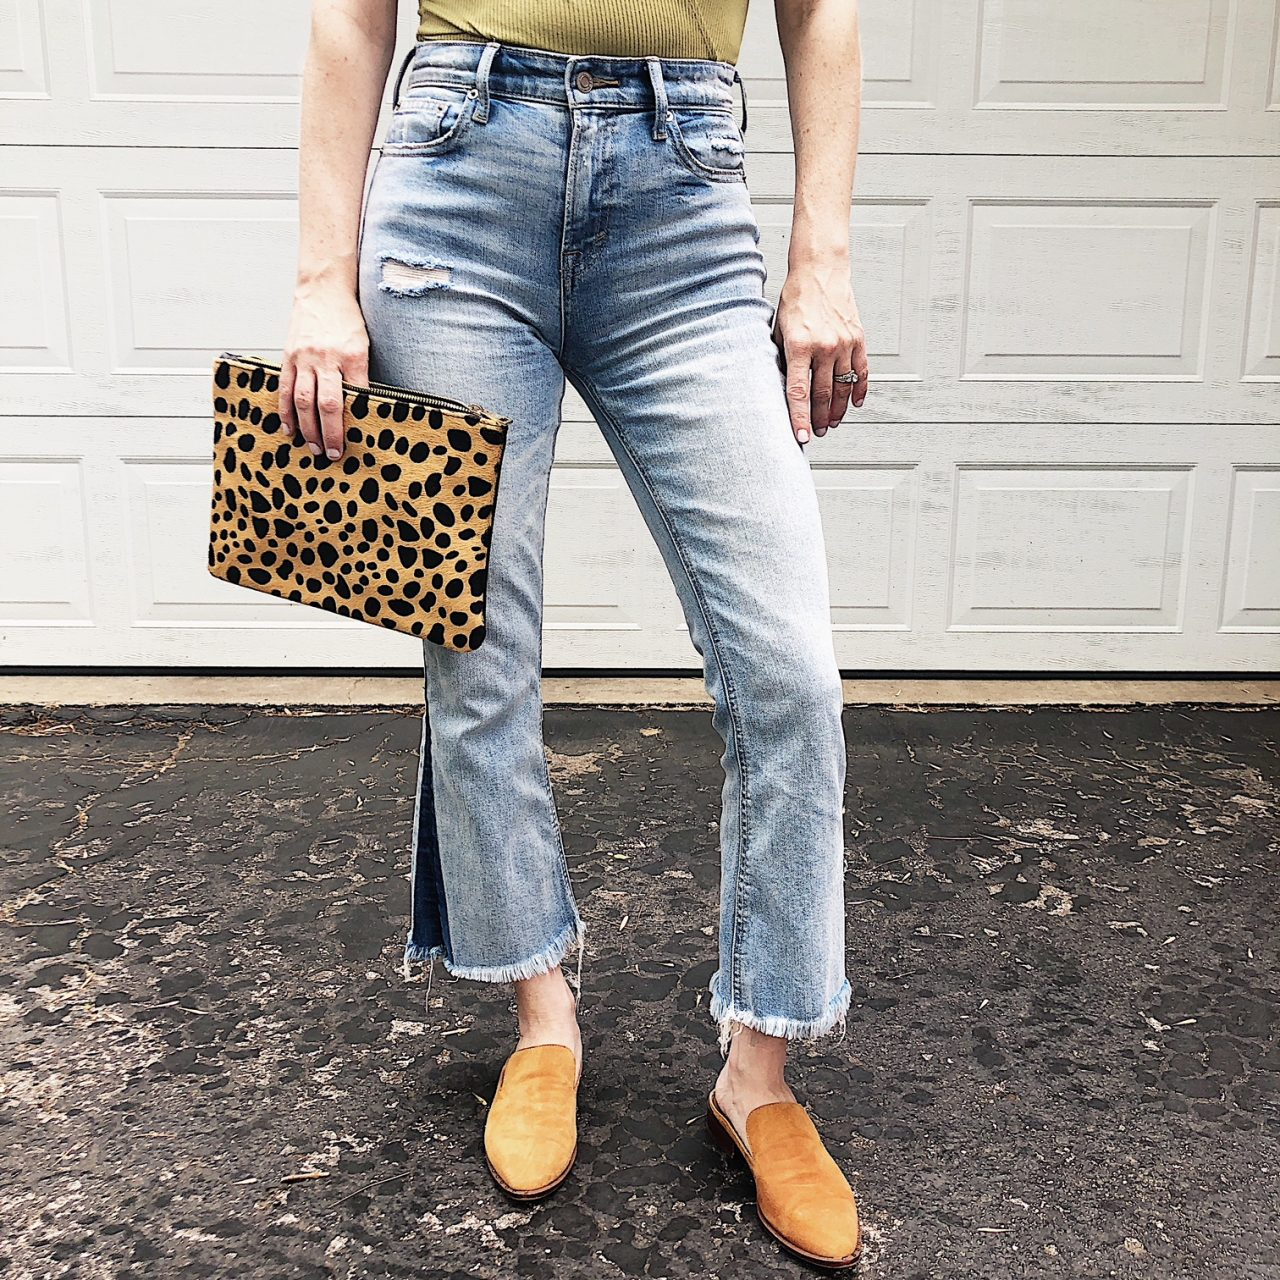 3 WAYS TO WEAR CROPPED FLARE JEANS